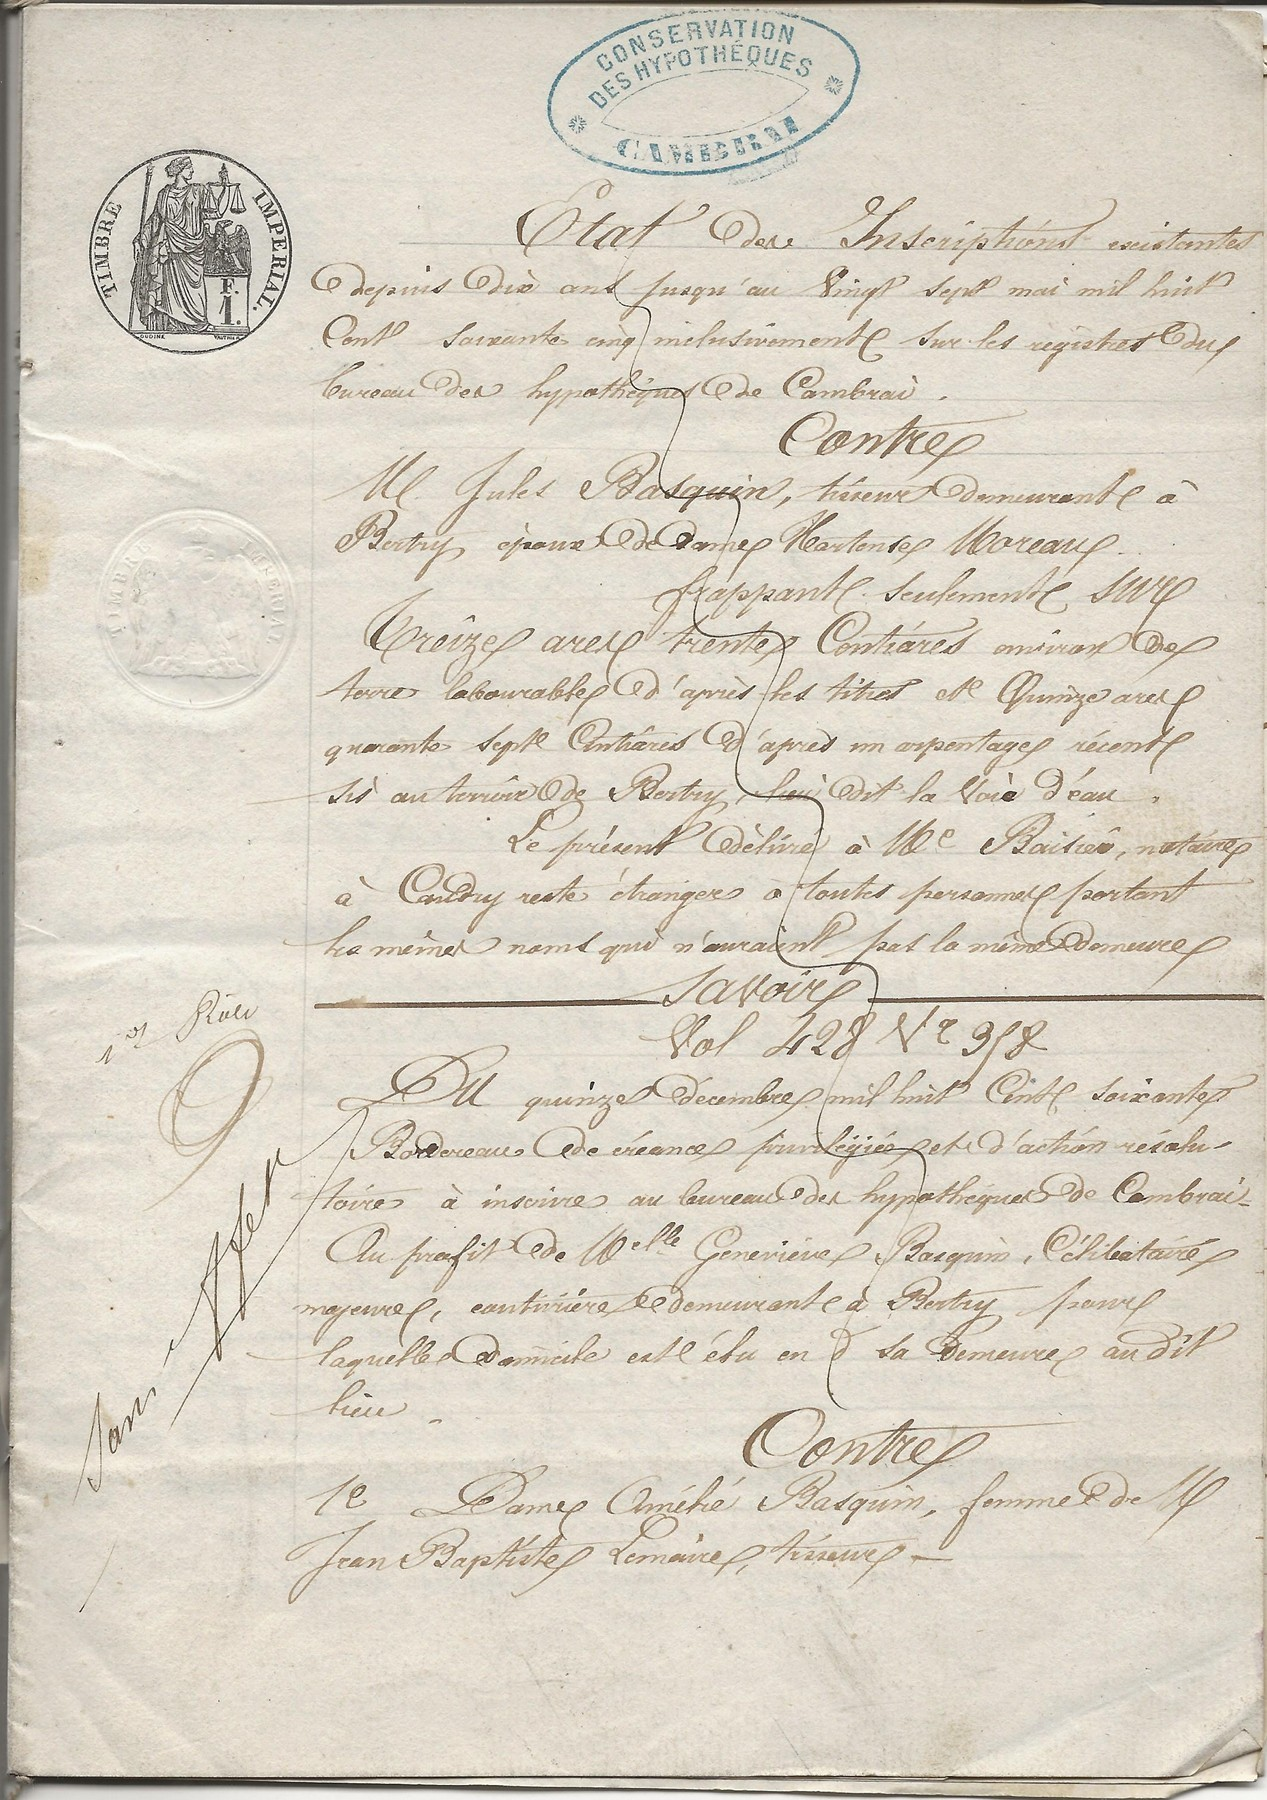 1863 document hypothecaire basquin 001 8